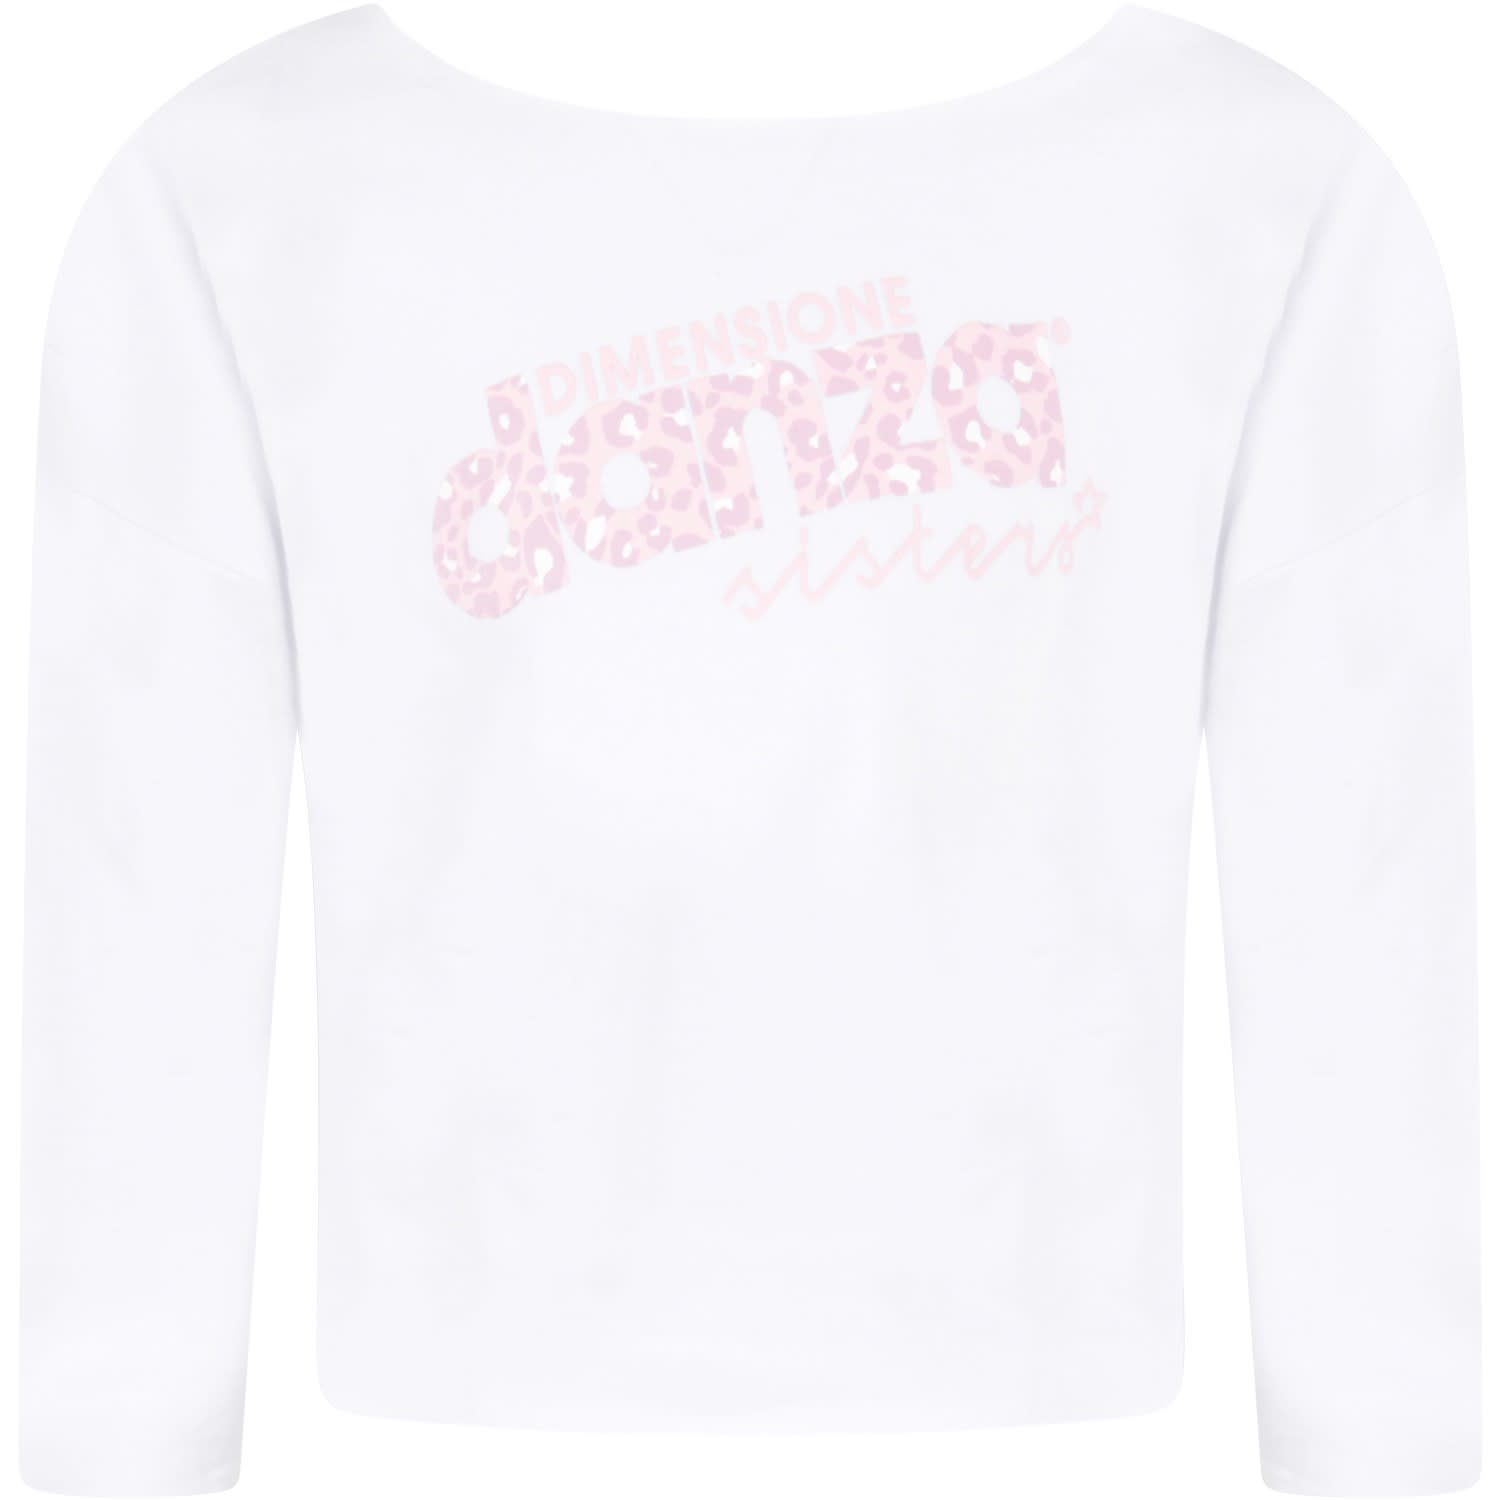 White Sweatshirt For Girl With Pink Logo